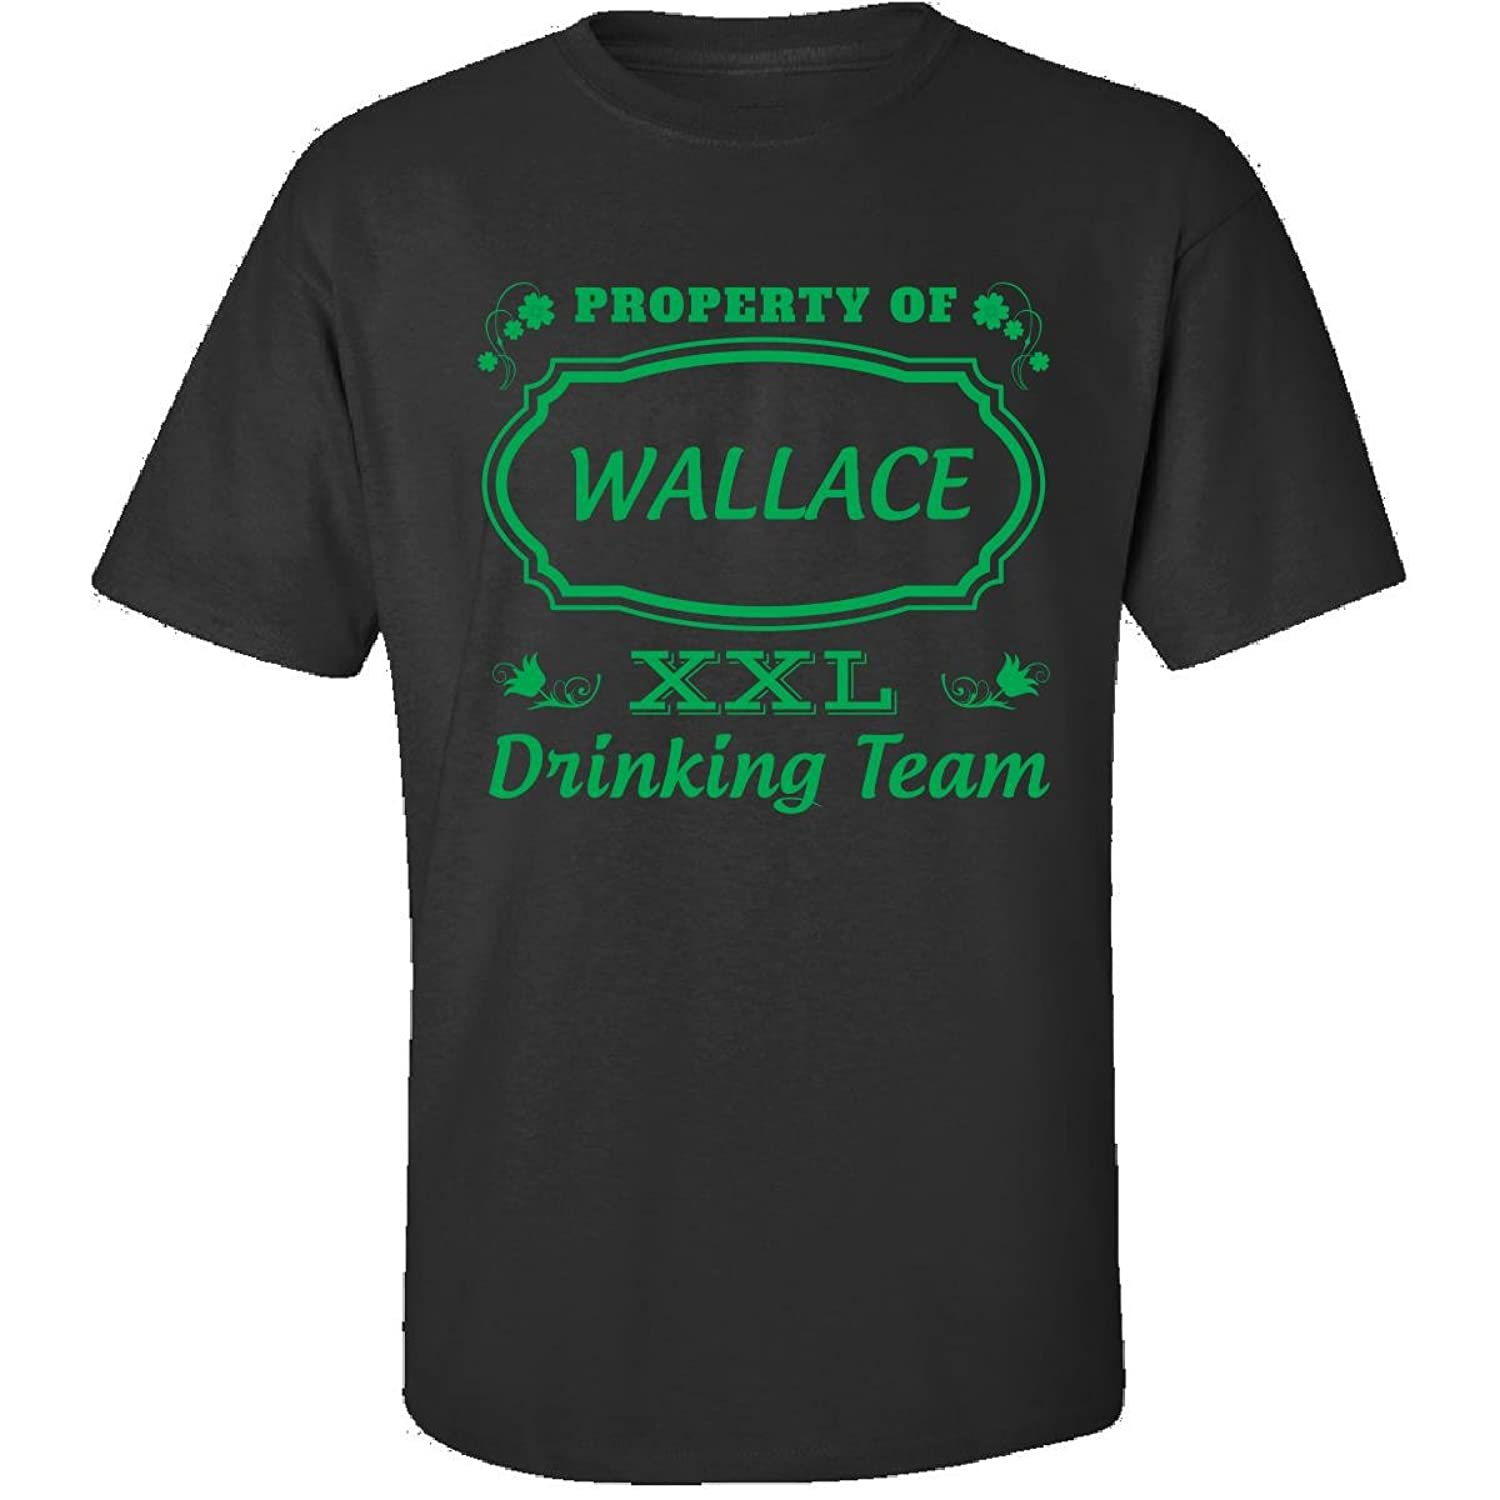 Property Of Wallace St Patrick Day Beer Drinking Team - Adult Shirt